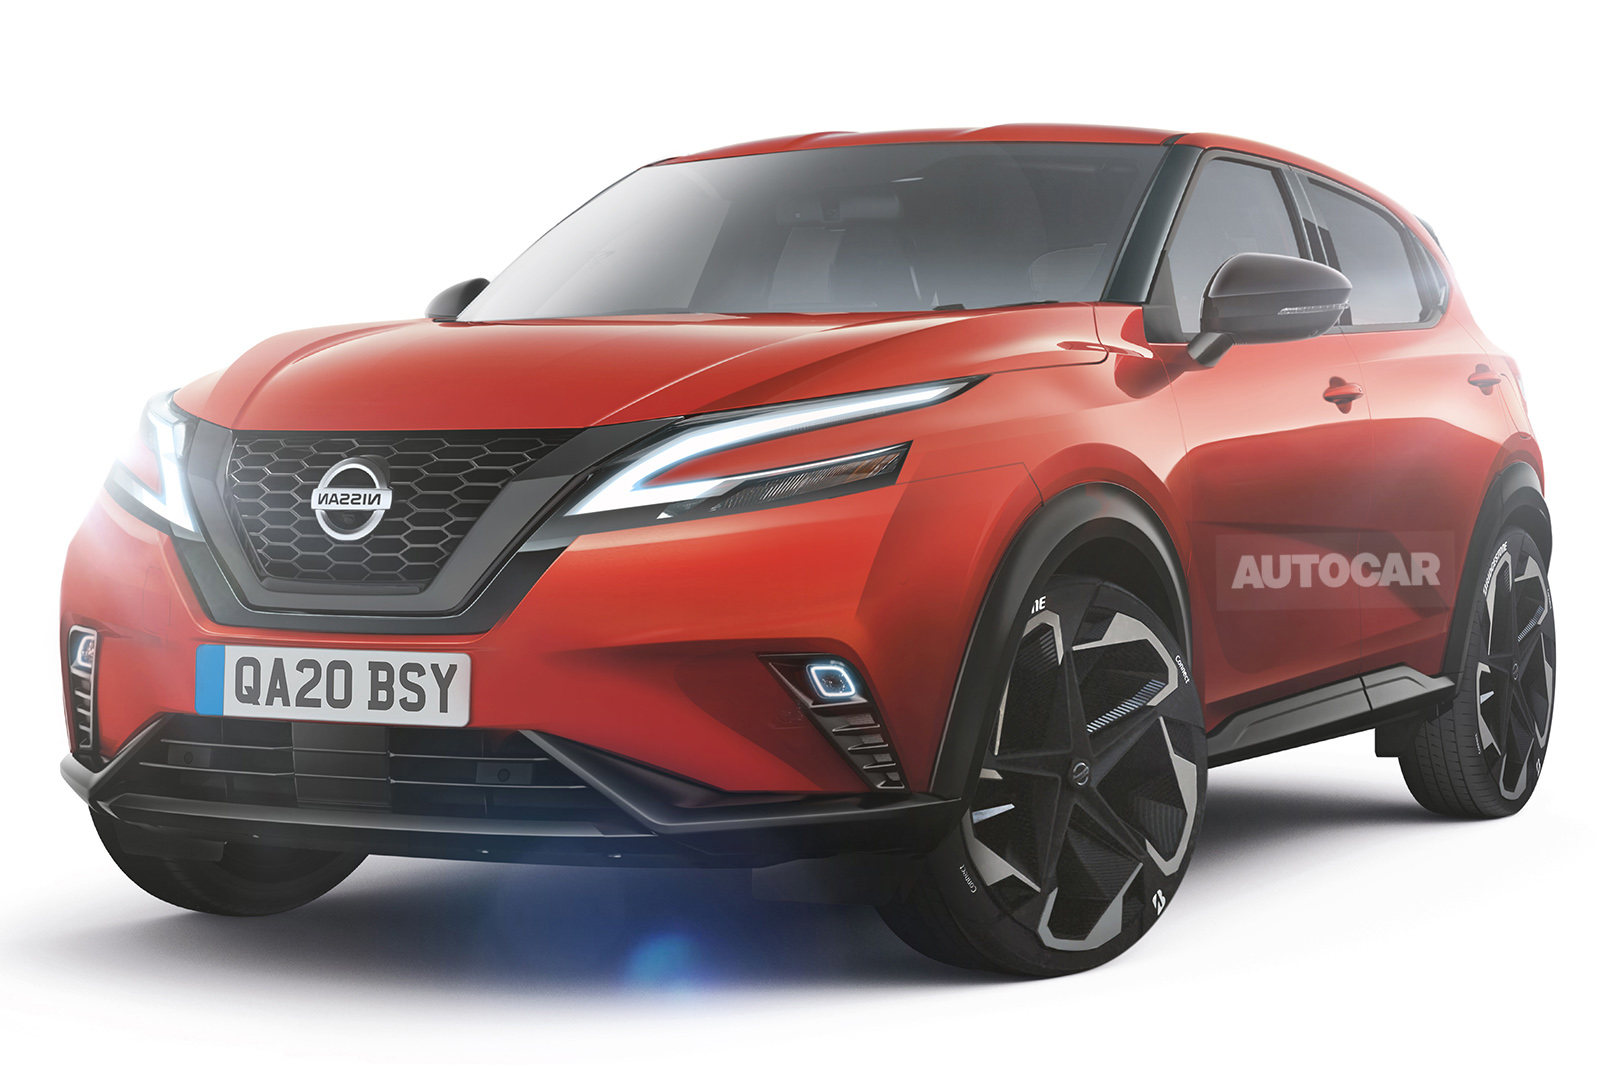 New 2021 Nissan Qashqai To Be Revealed On 18 February Autocar